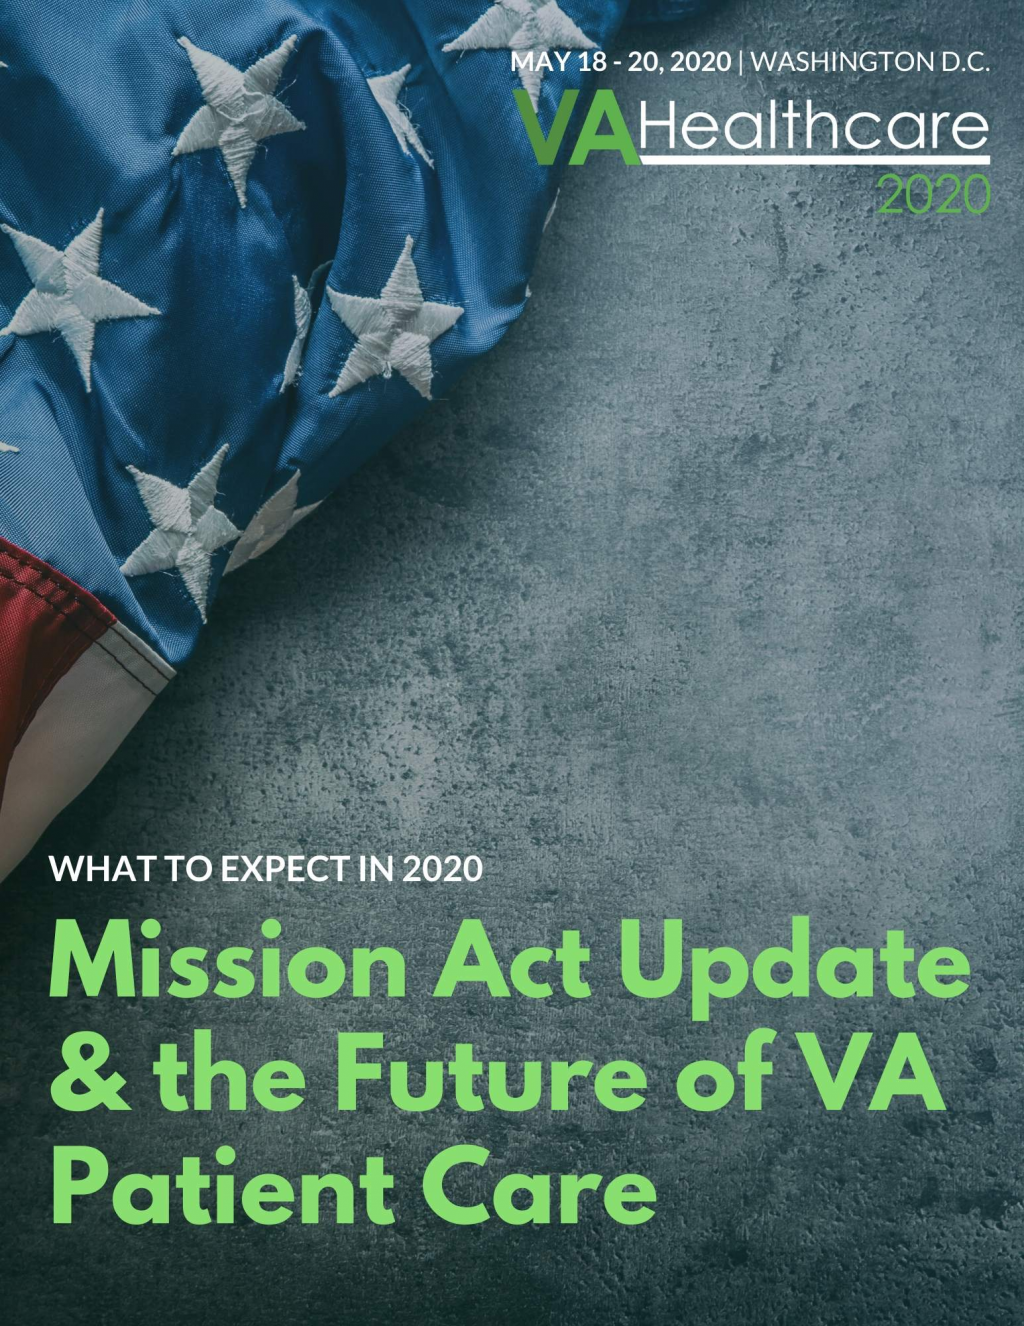 Mission Act Update & the Future of VA Patient Care: What to Expect in 2020